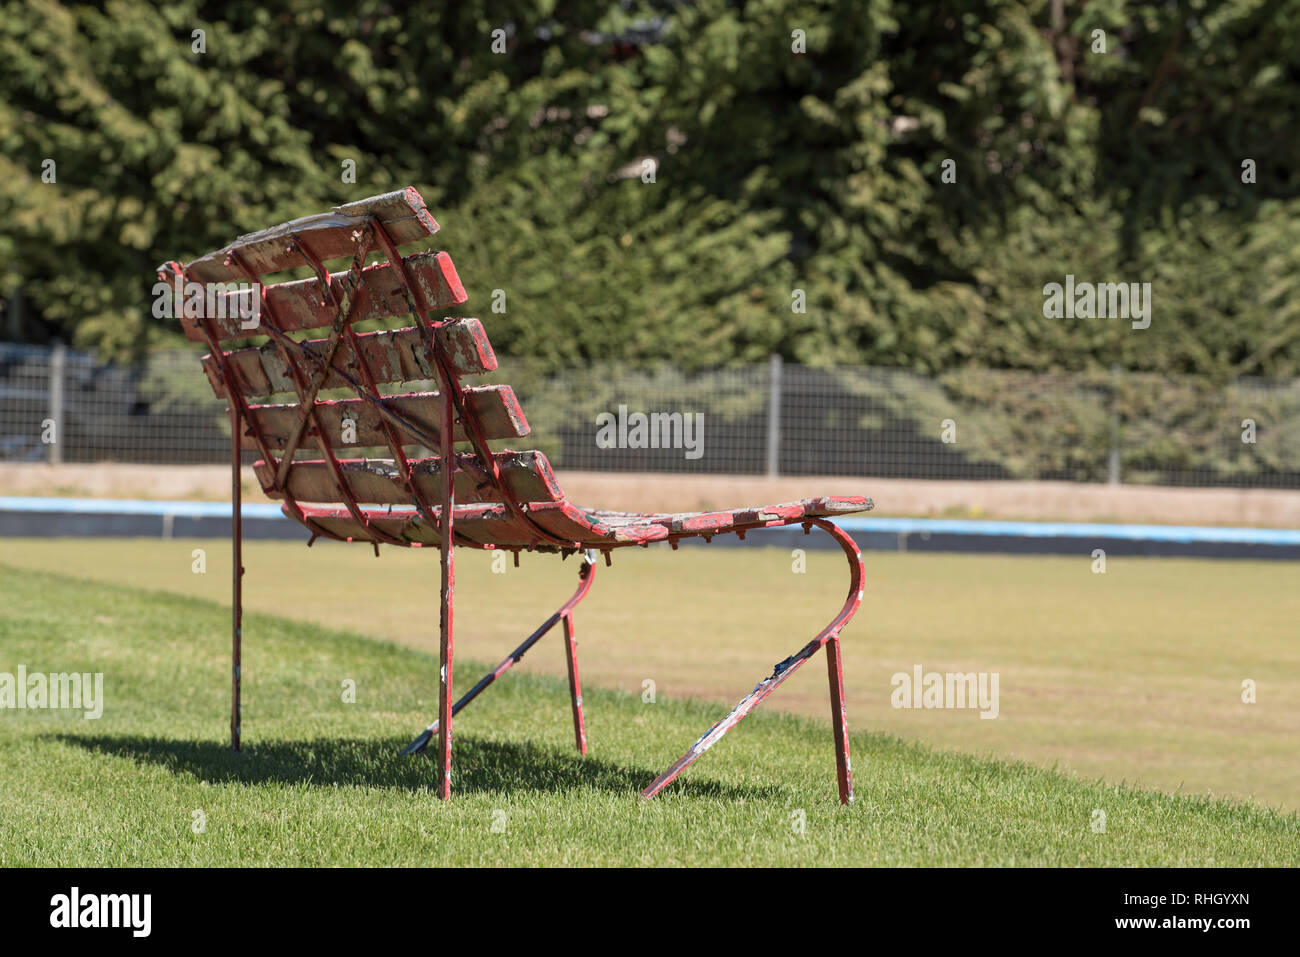 An old park bench sits beside a bowling green at Club Milthorpe, AKA The Milthorpe Lawn Bowls Club in central western New South Wales, Australia - Stock Image